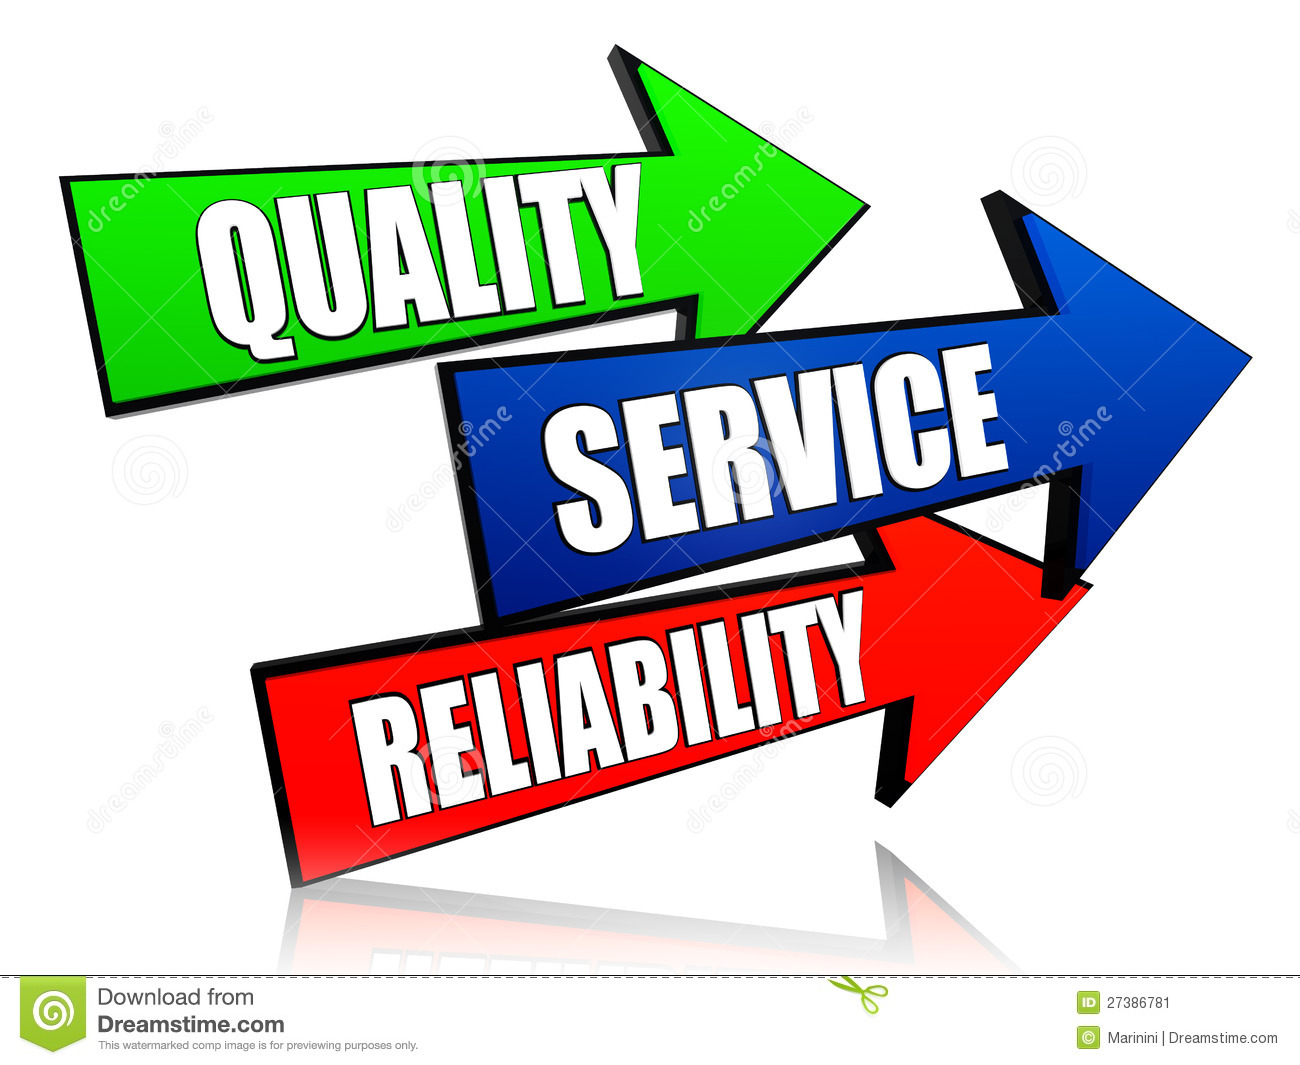 Quality, service, reliability - words in 3d colorful arrows with text.: www.dreamstime.com/stock-image-quality-service-reliability-arrows...